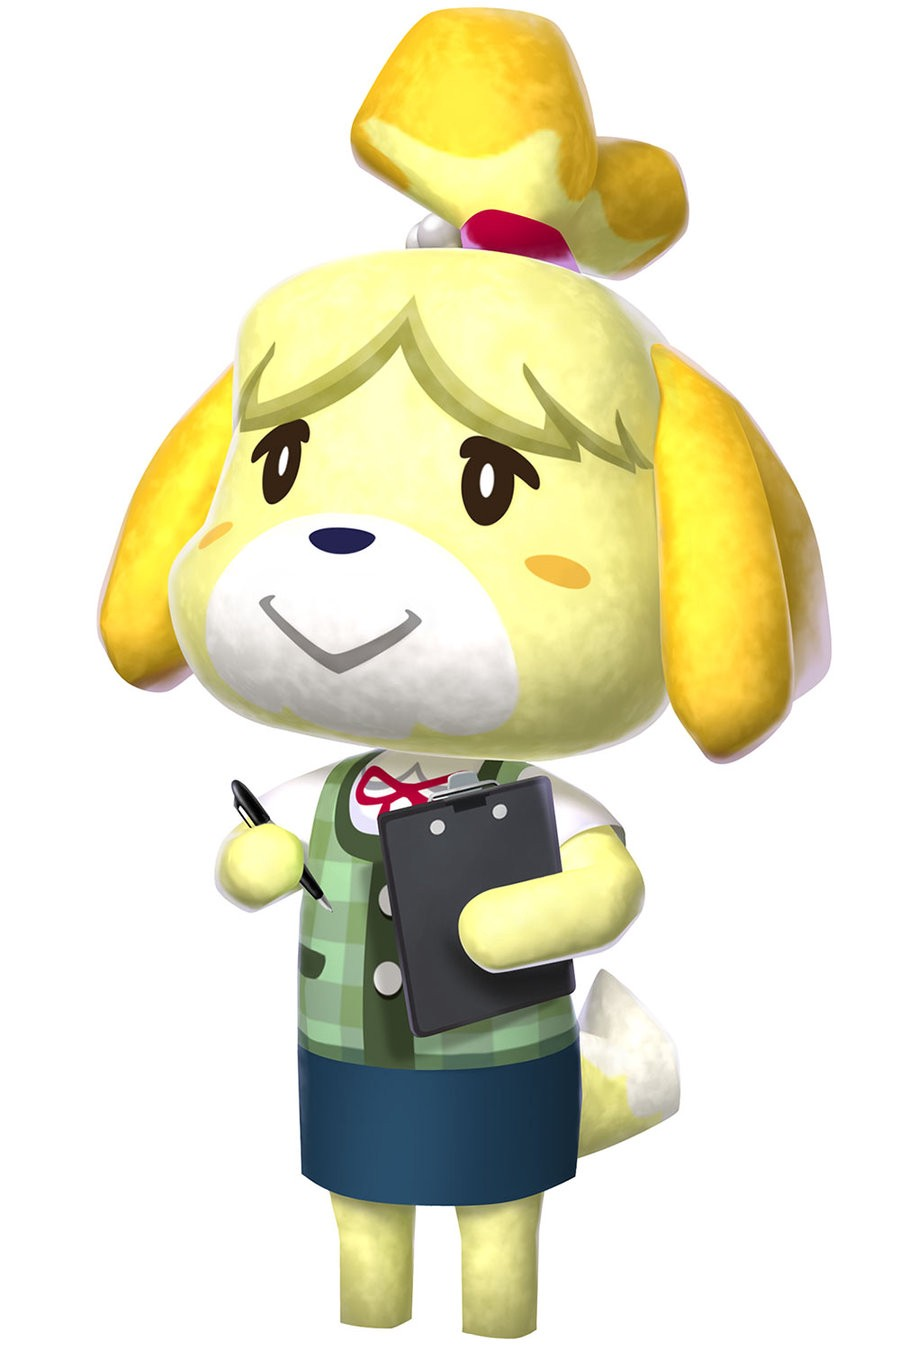 Animal Crossing Isabelle X Digby Porn animal crossing and the normalization of sexual violence